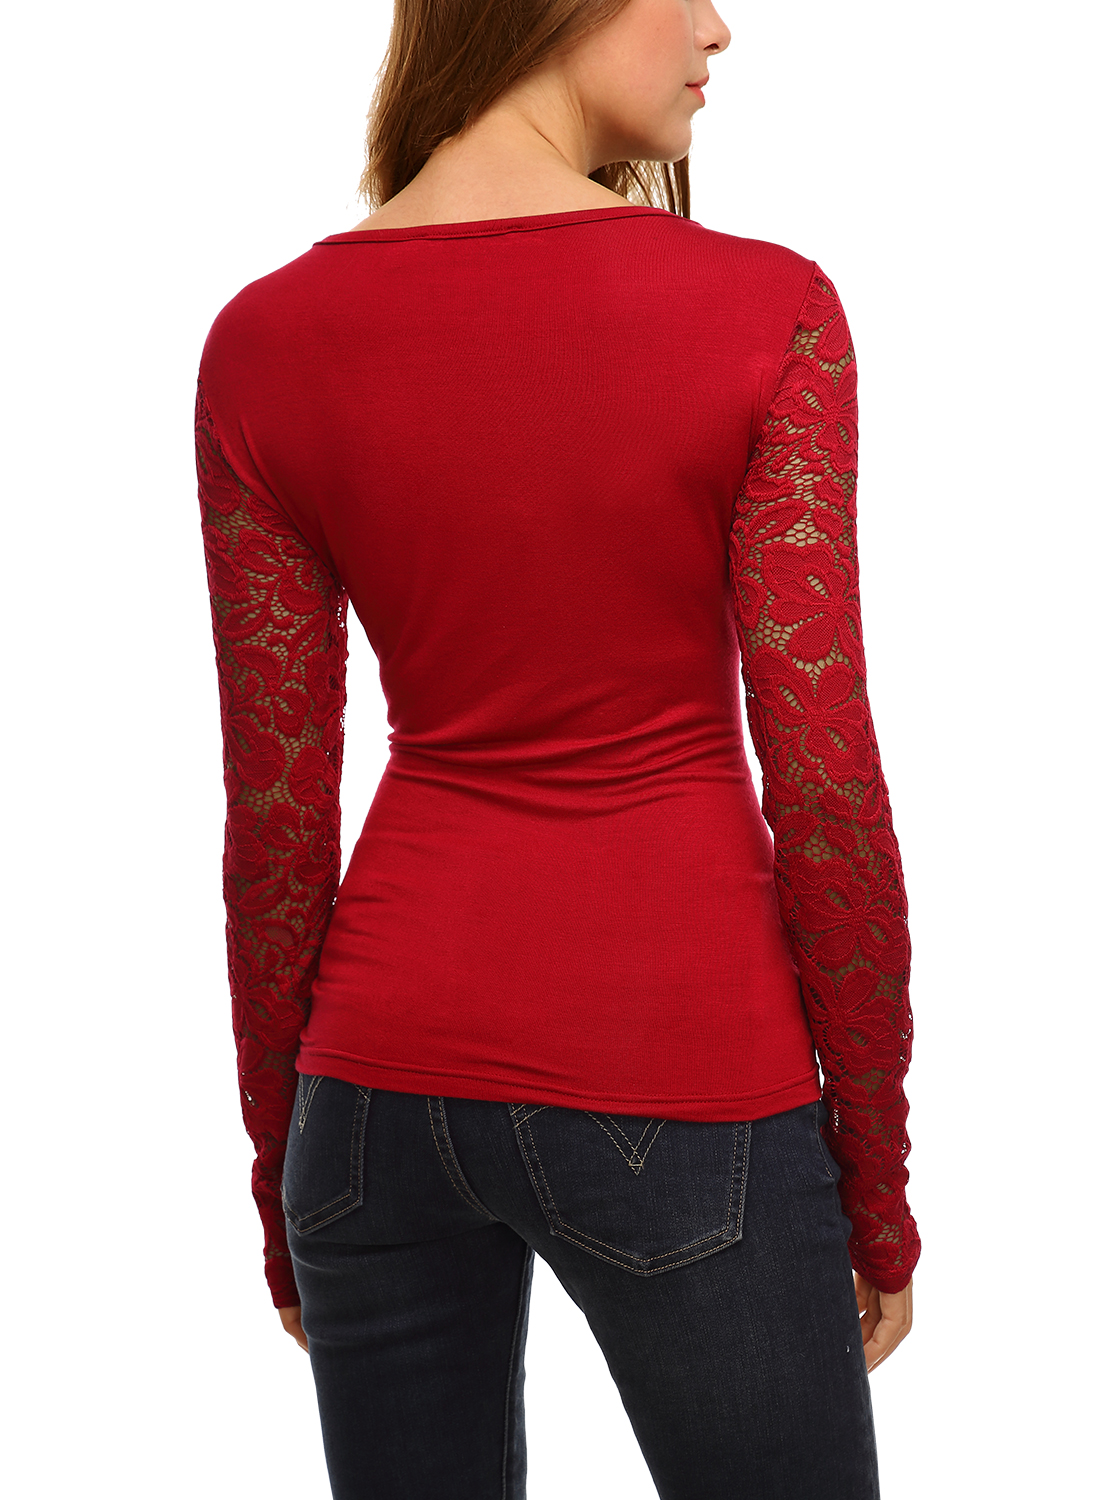 Women 39 s trendy floral lace long sleeves tunic tops blouse for Trendy t shirts for ladies